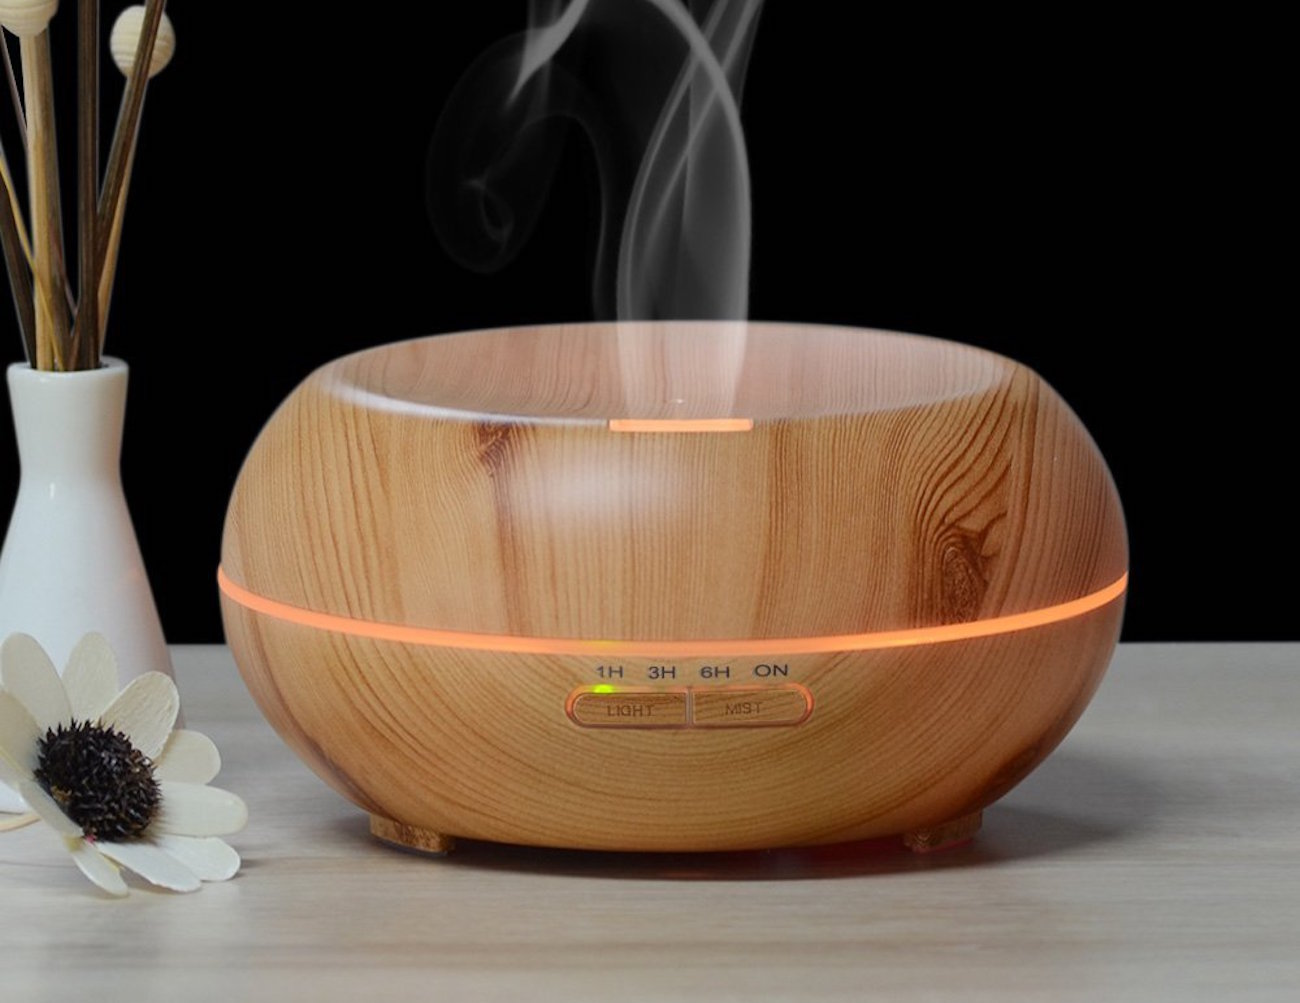 Innogear Wood Grain Ultrasonic Oil Diffuser 187 Review